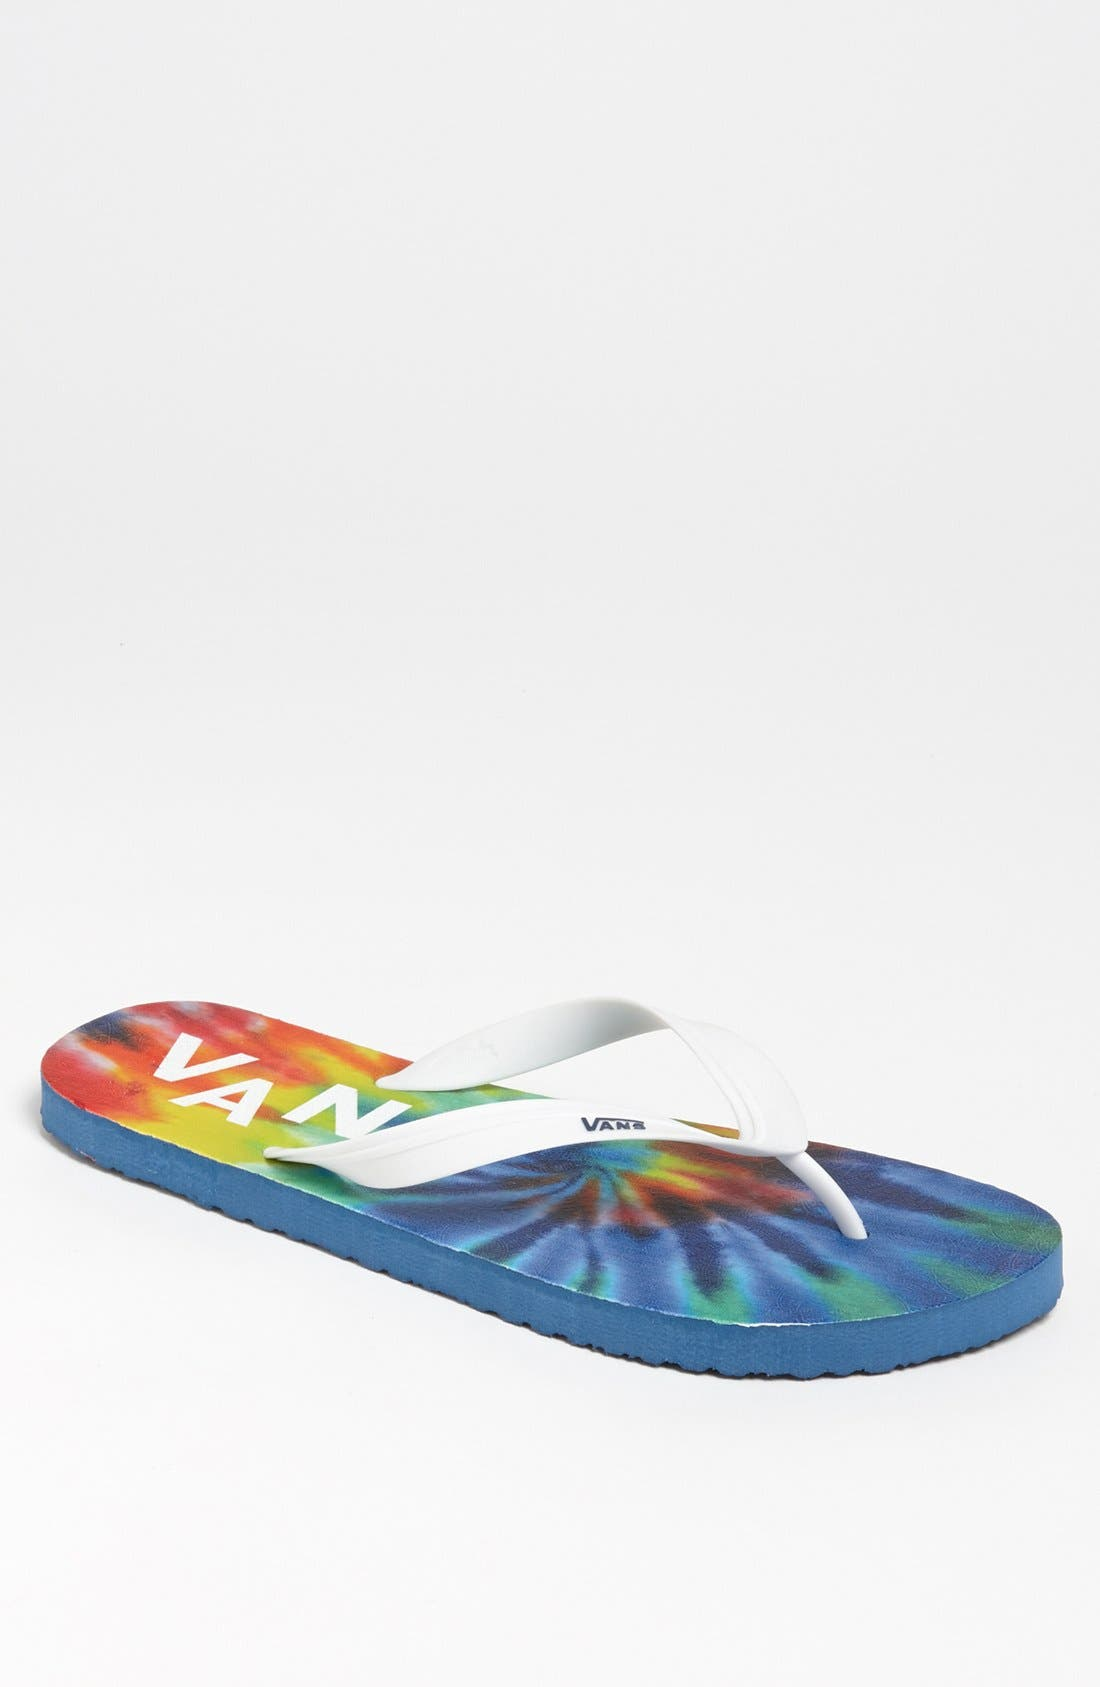 Alternate Image 1 Selected - Vans 'Lanai' Flip Flop (Men)